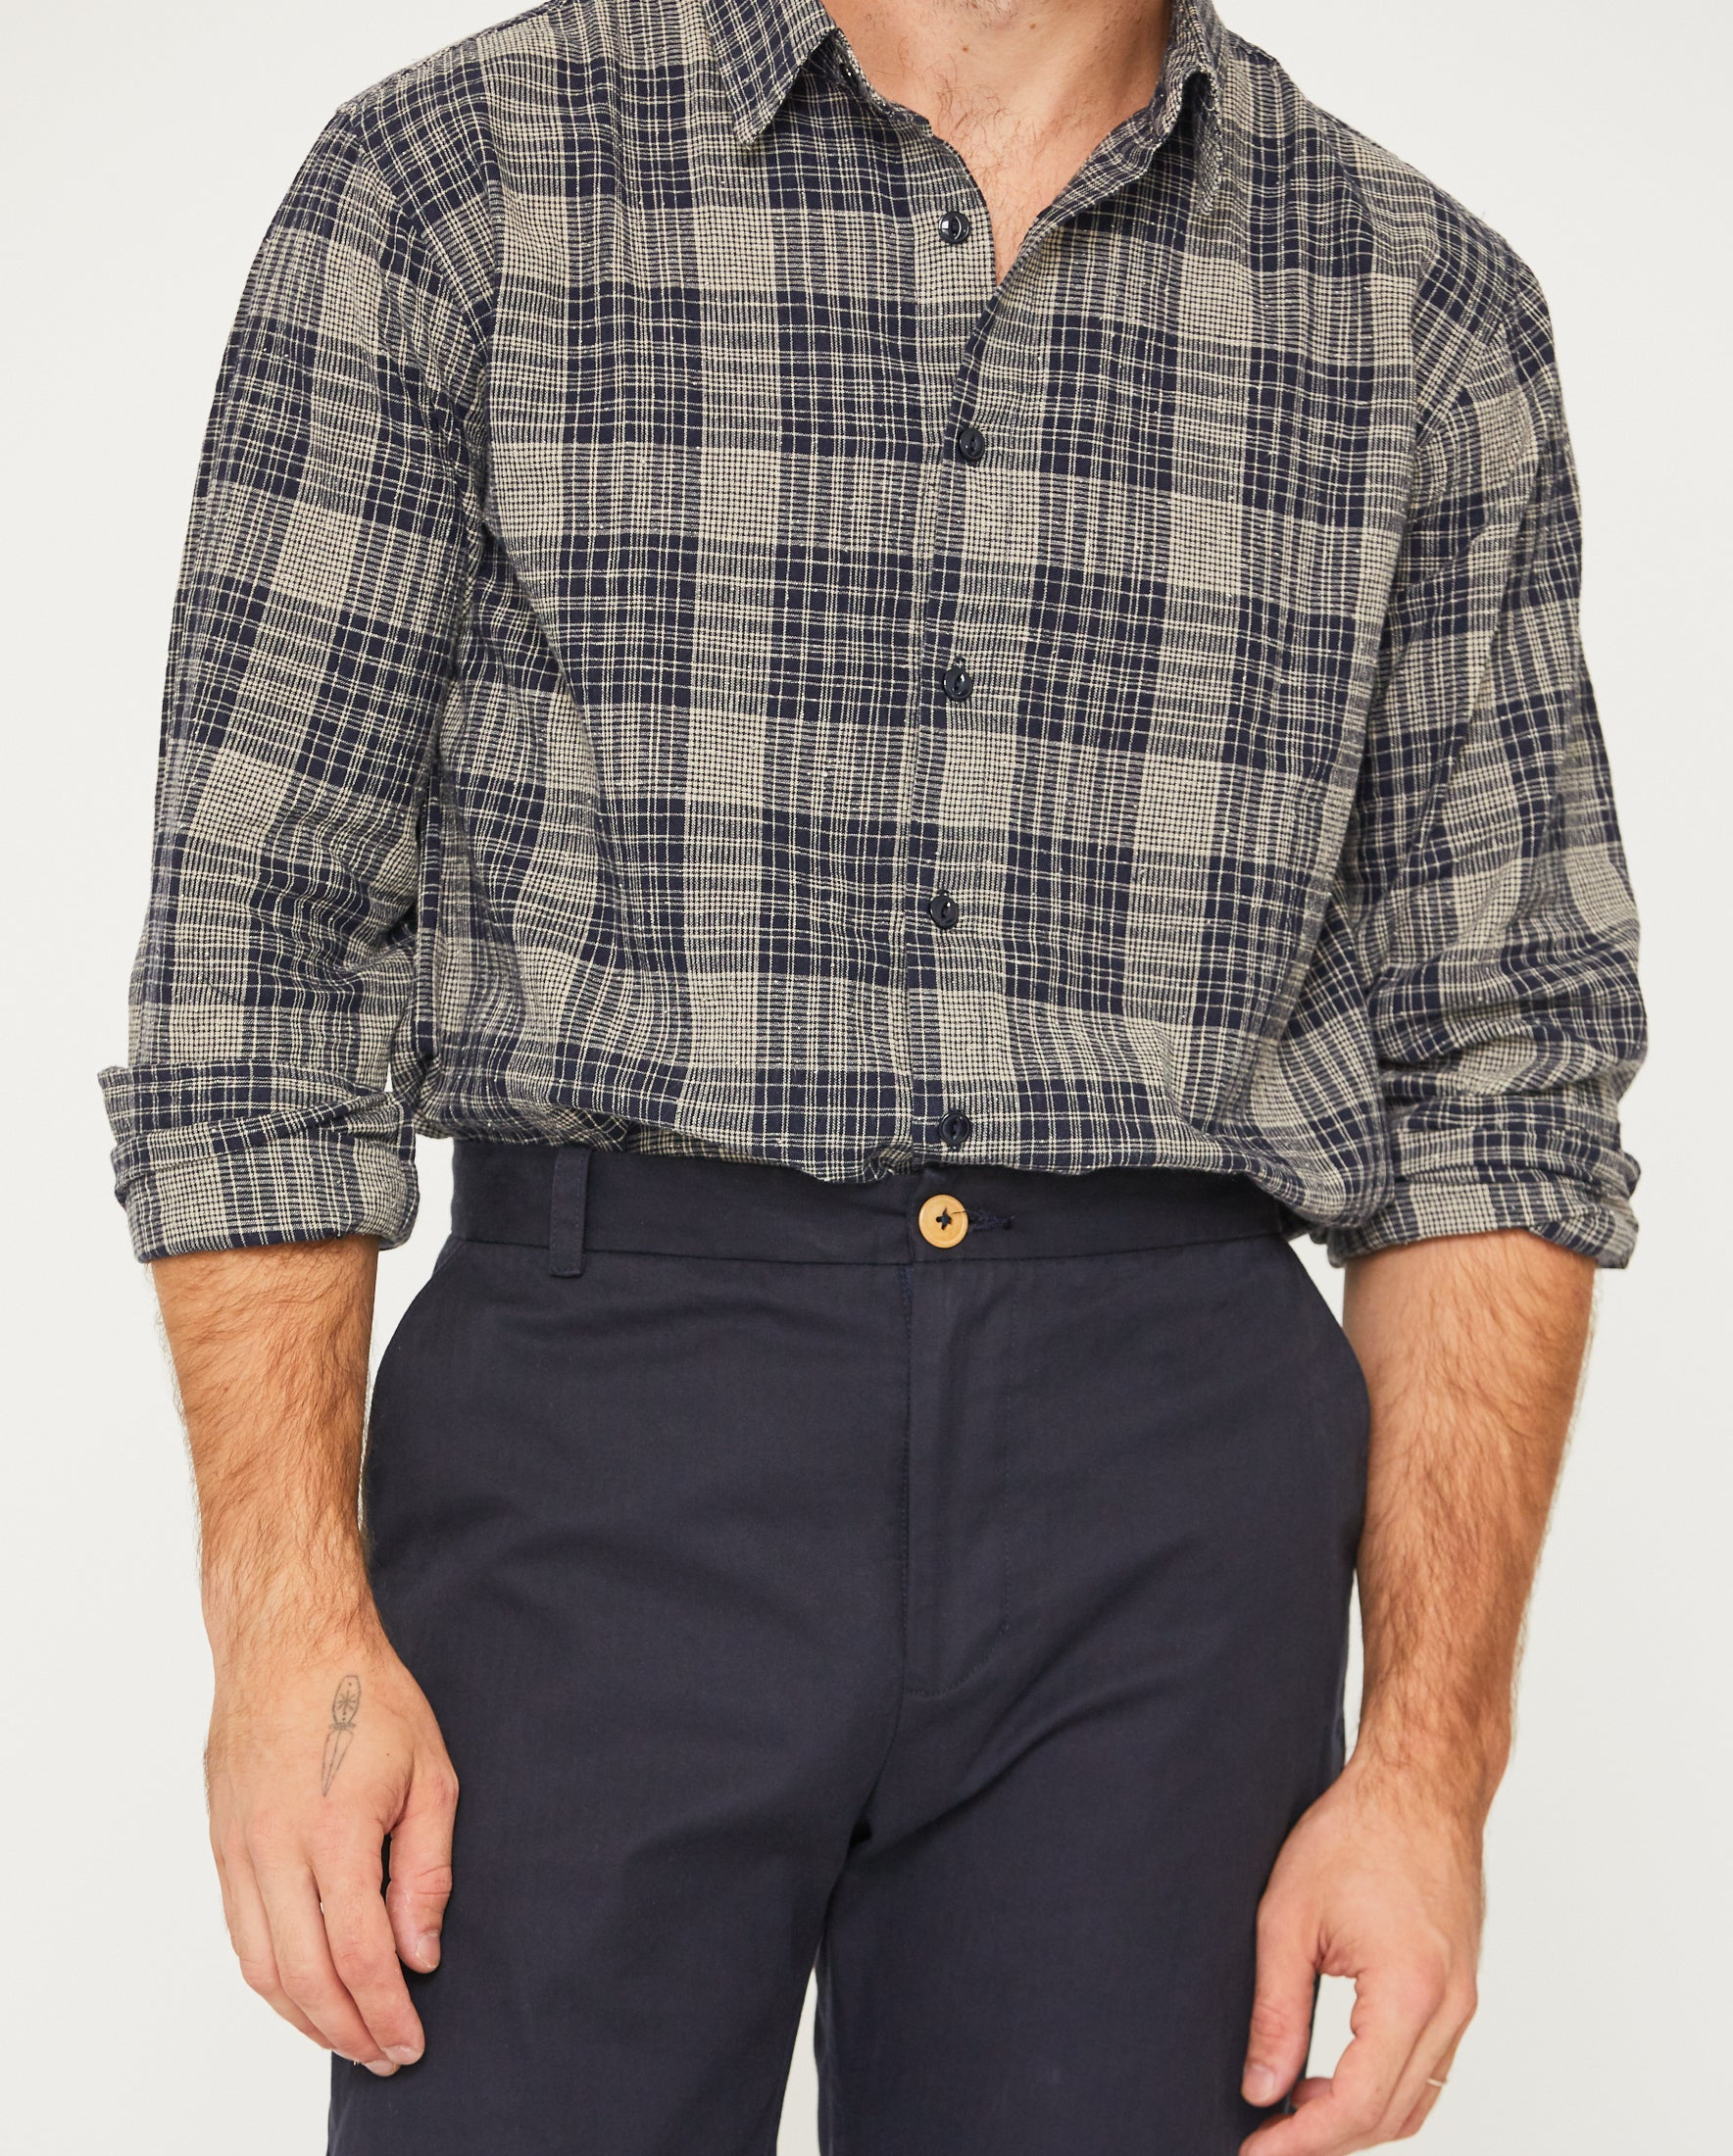 PERCY BUTTON DOWN - MIDNIGHT PLAID